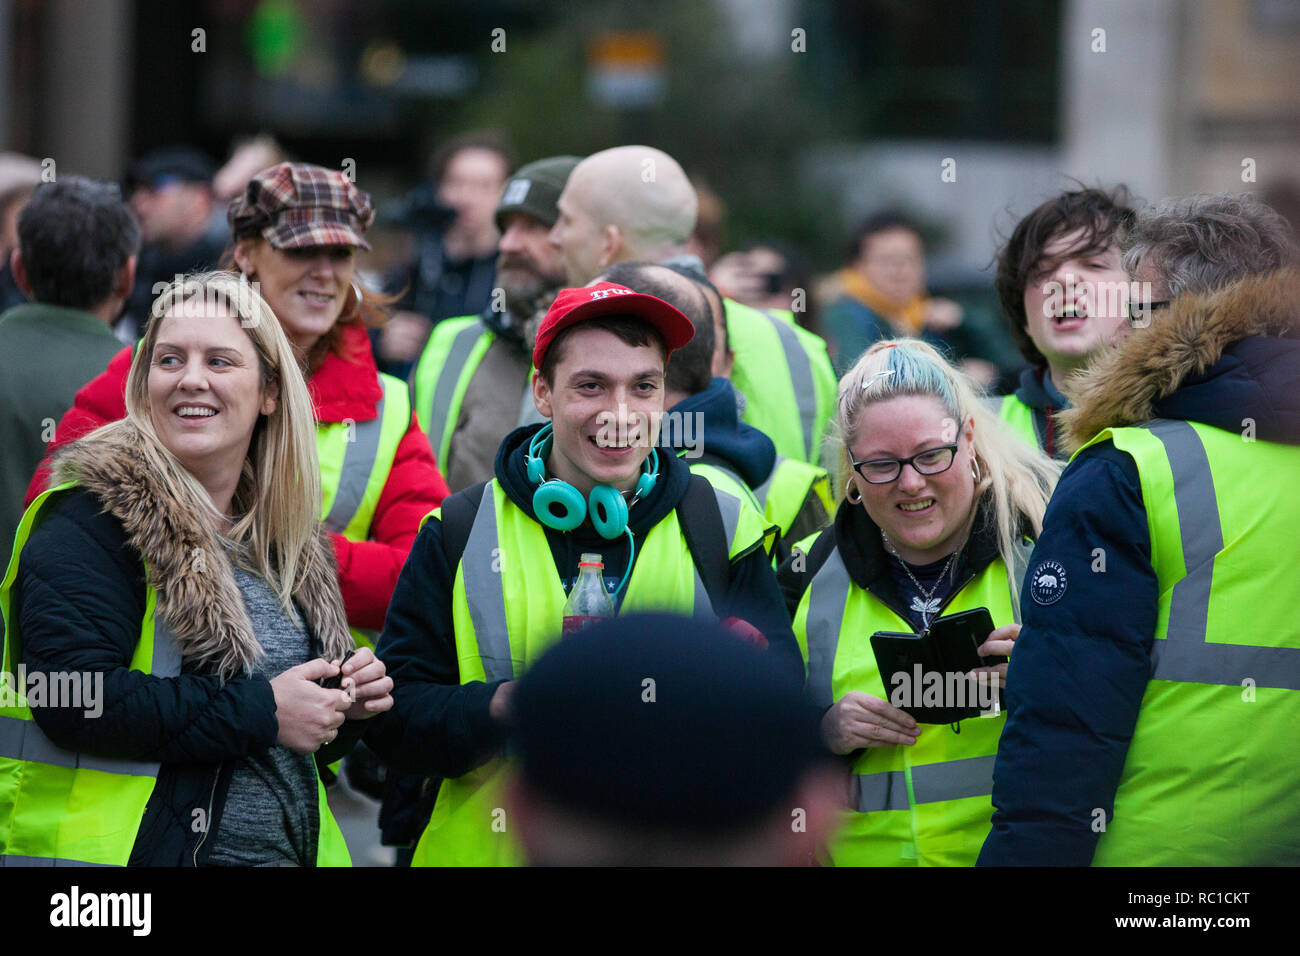 London, UK. 12th January, 2019. Max Hammet-Millay (c) stands among around fifty supporters of far-right group Liberty Defenders being kept apart by police from hundreds of protesters taking part in a 'Britain is Broken: General Election Now' demonstration organised by the People's Assembly Against Austerity. Some members of both groups were wearing yellow vests in solidarity with the 'gilets jaunes' in France. Credit: Mark Kerrison/Alamy Live News - Stock Image